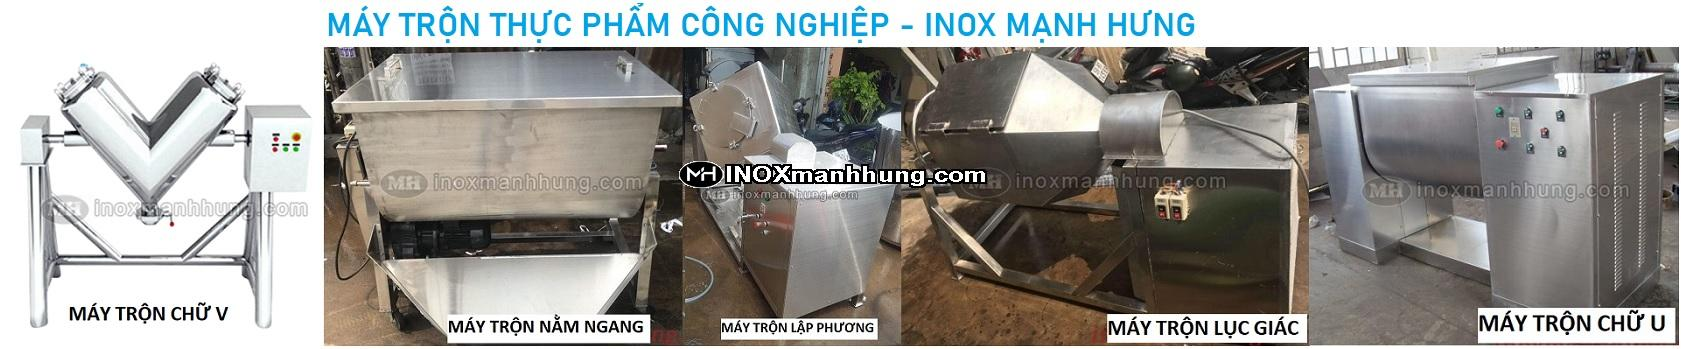 may-tron-cong-nghiep